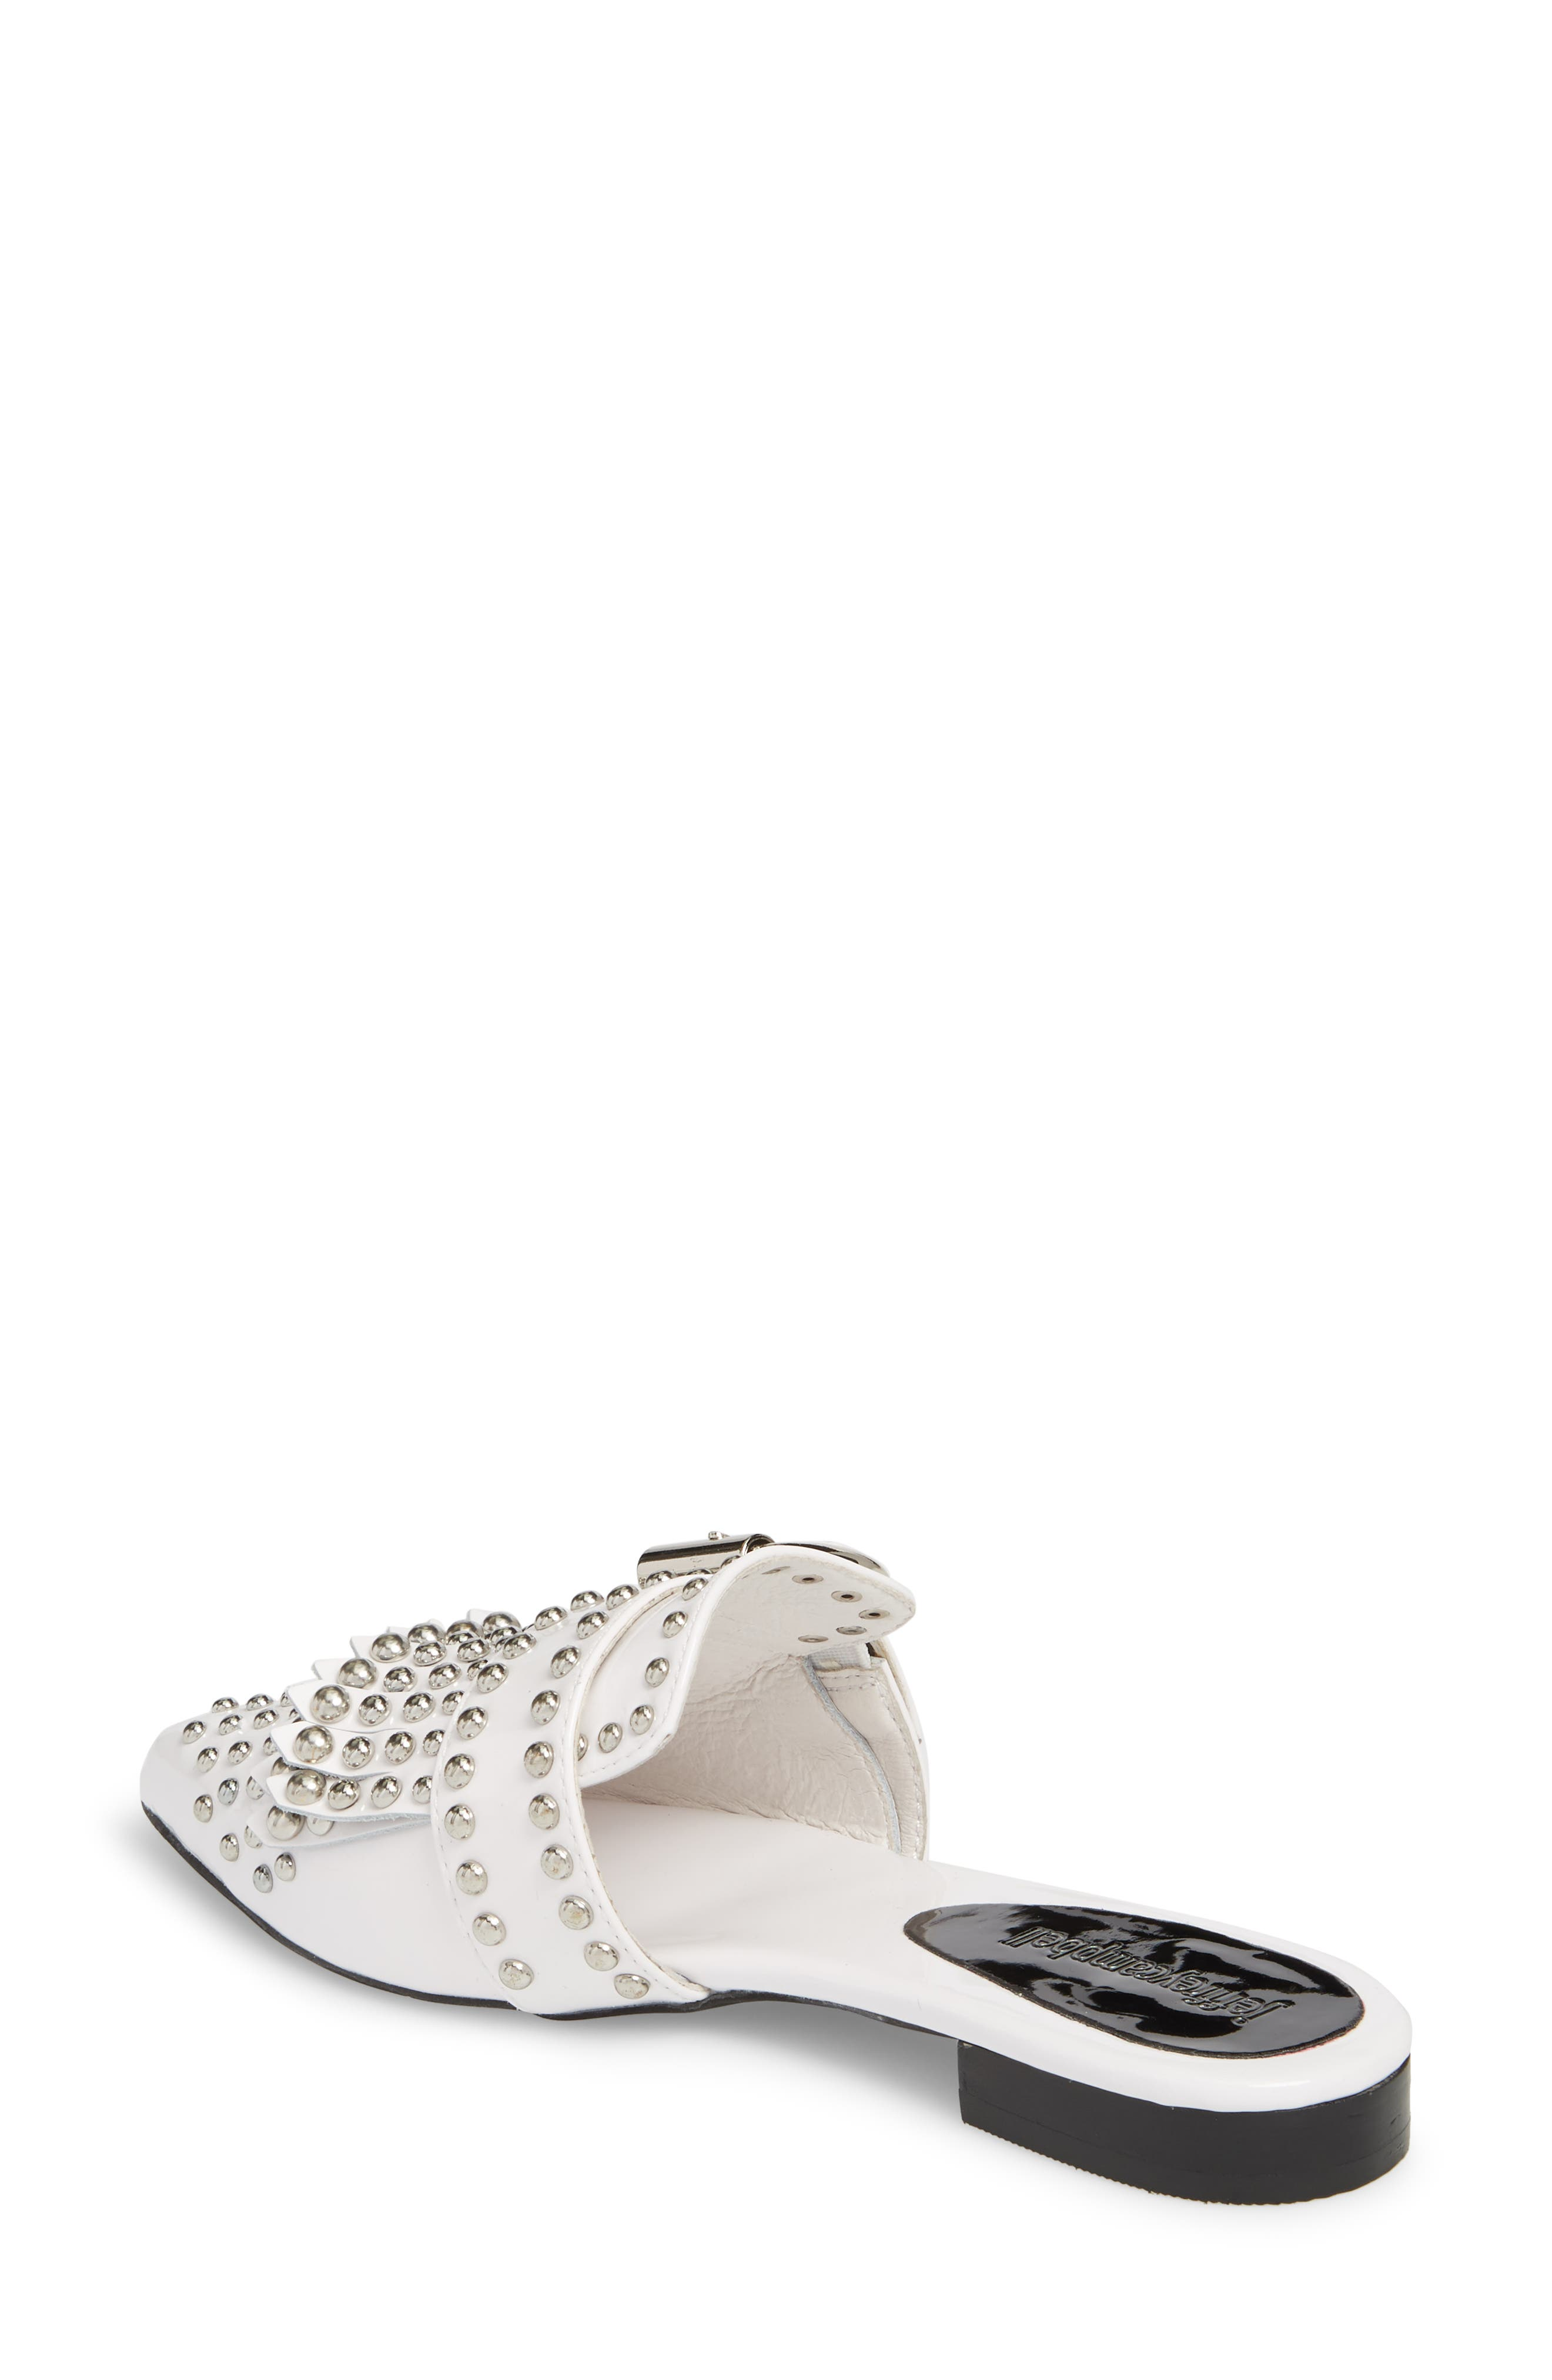 Daniel Studded Loafer Mule,                             Alternate thumbnail 2, color,                             WHITE PATENT